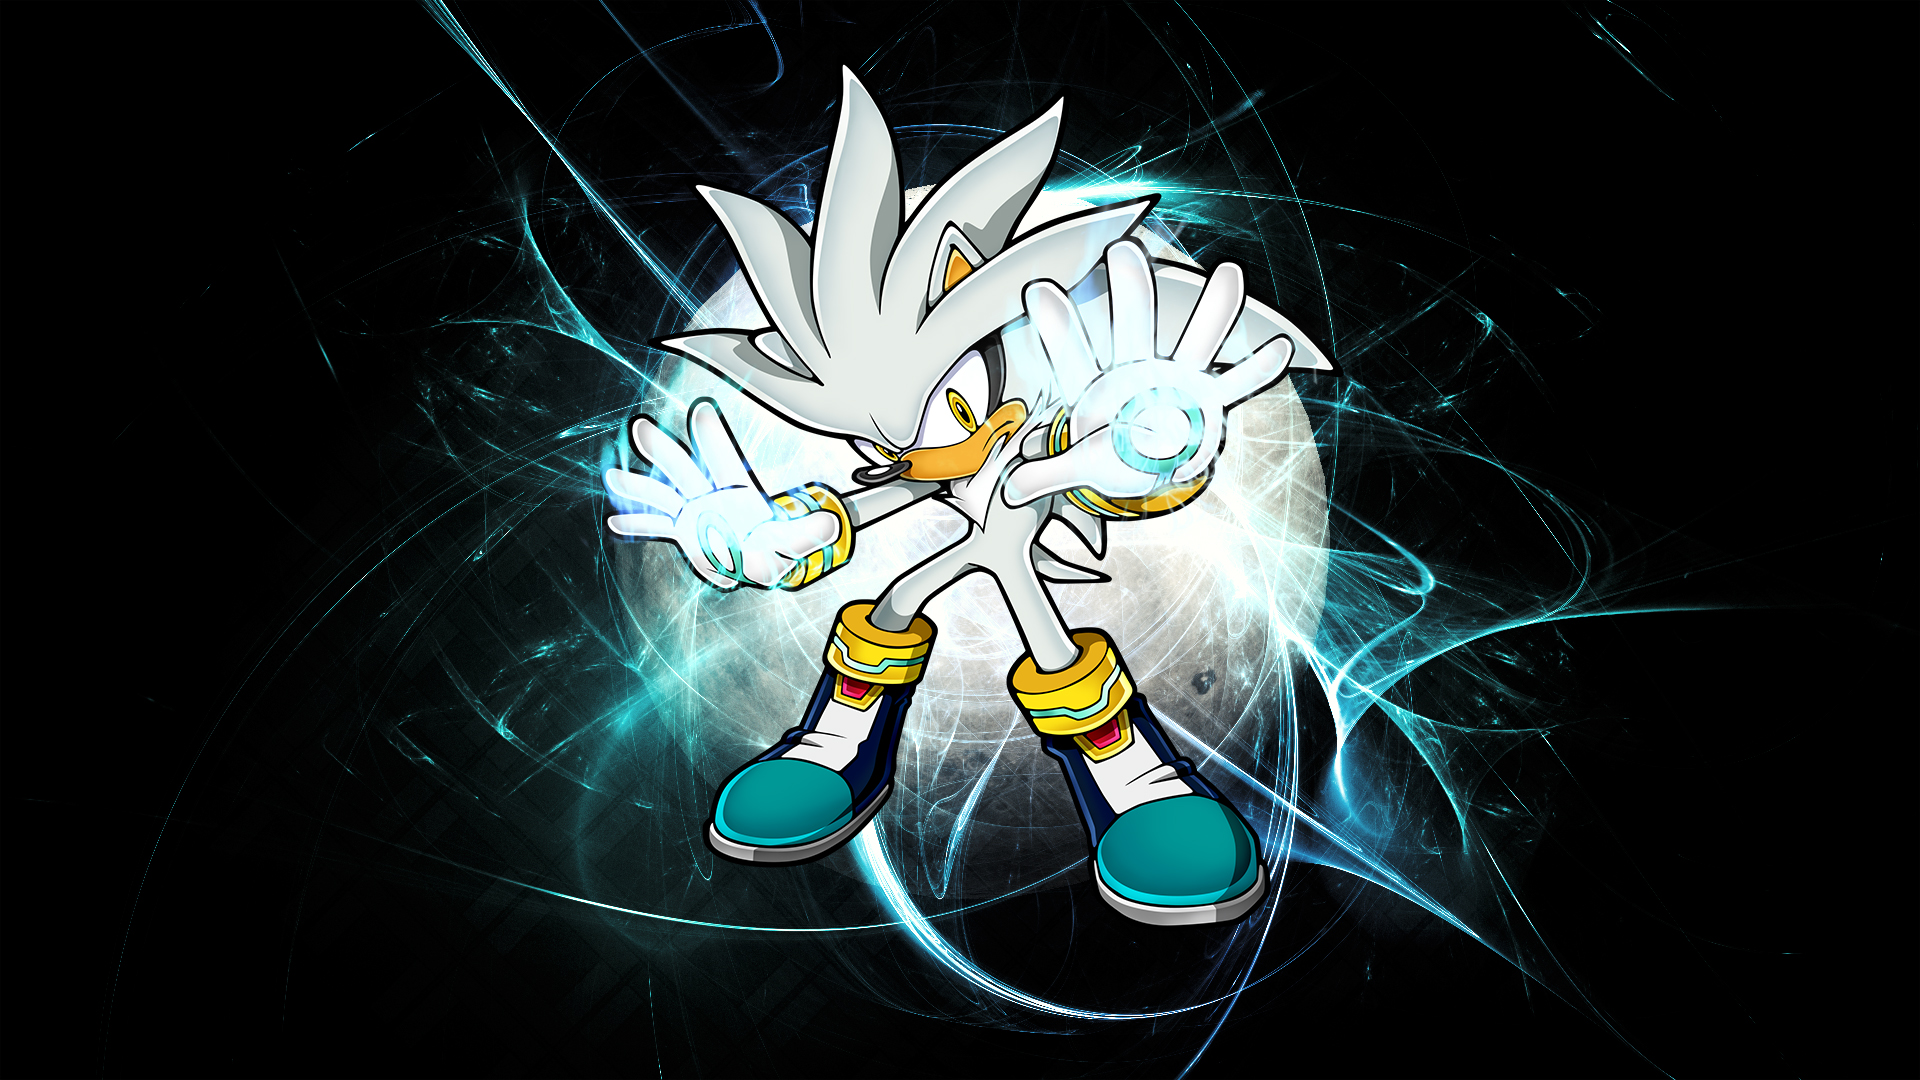 Silver (Wallpaper) by Hardii